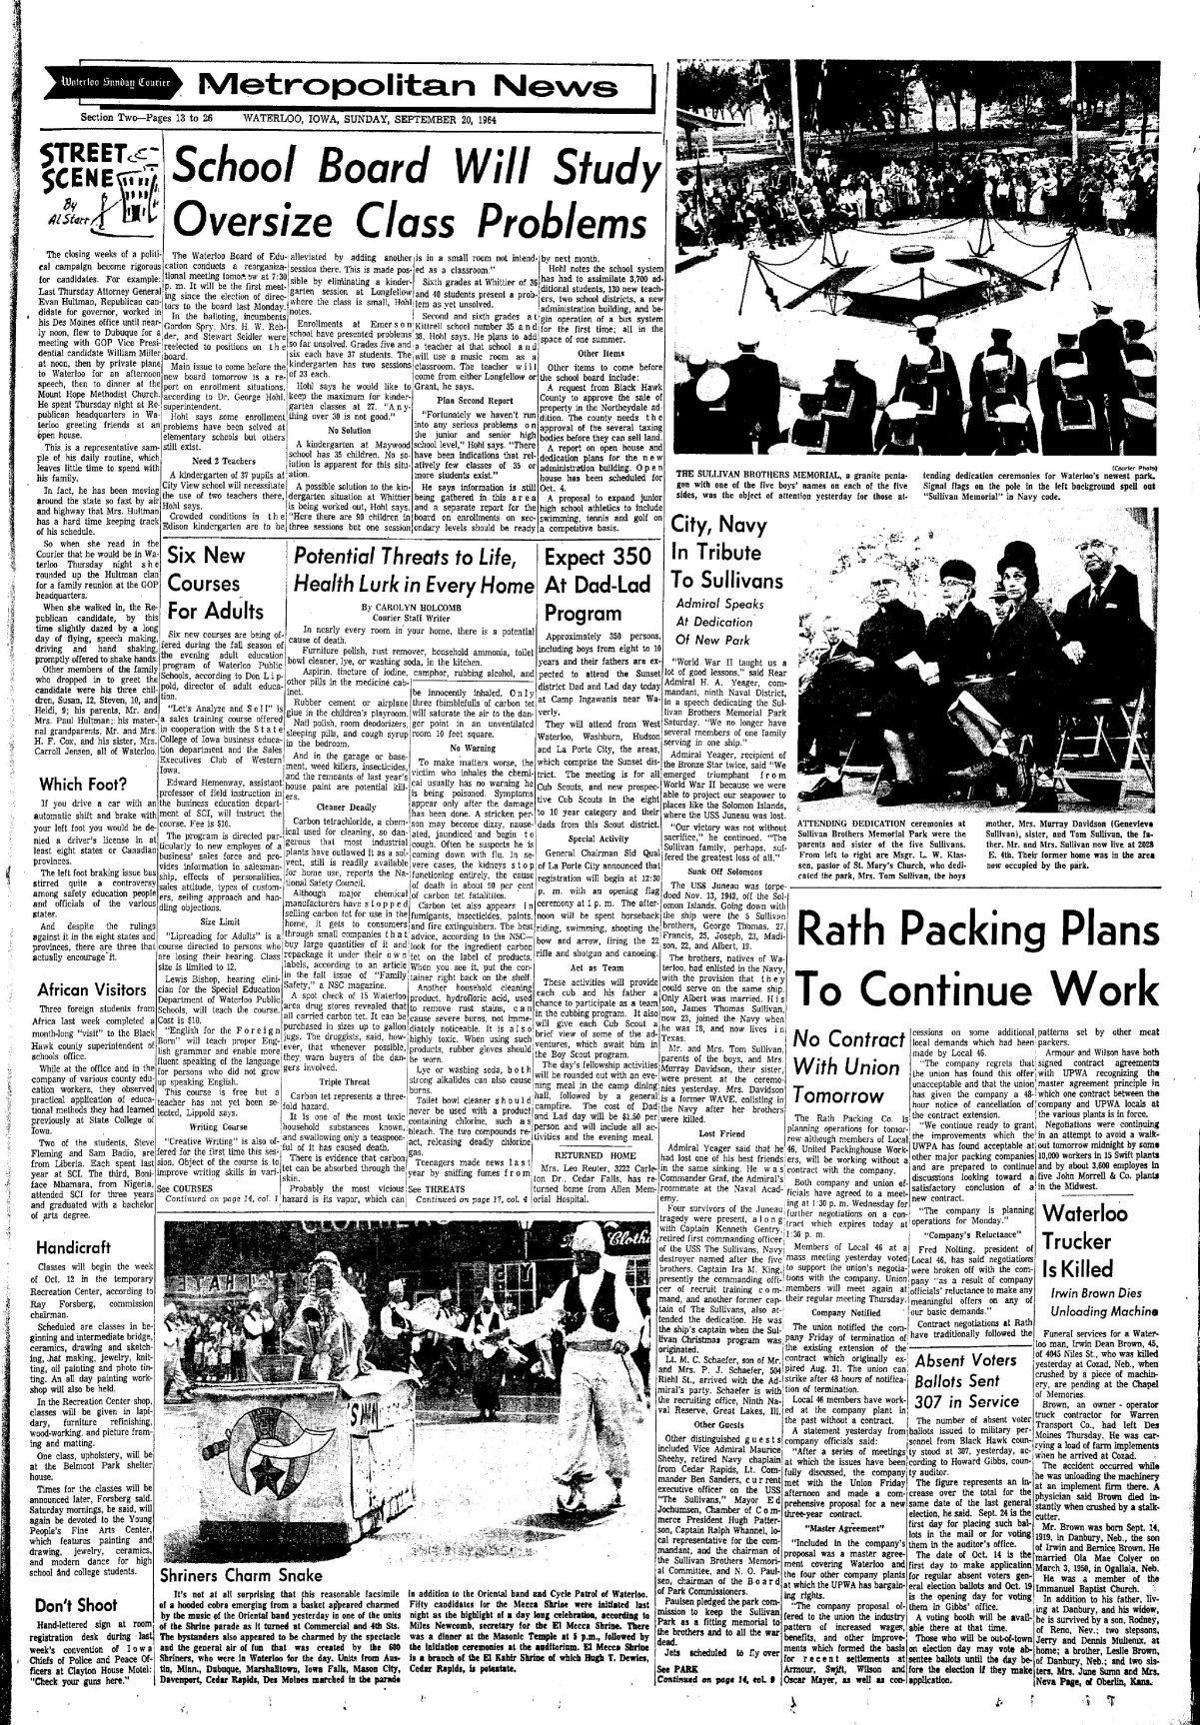 Courier Sept. 20, 1964